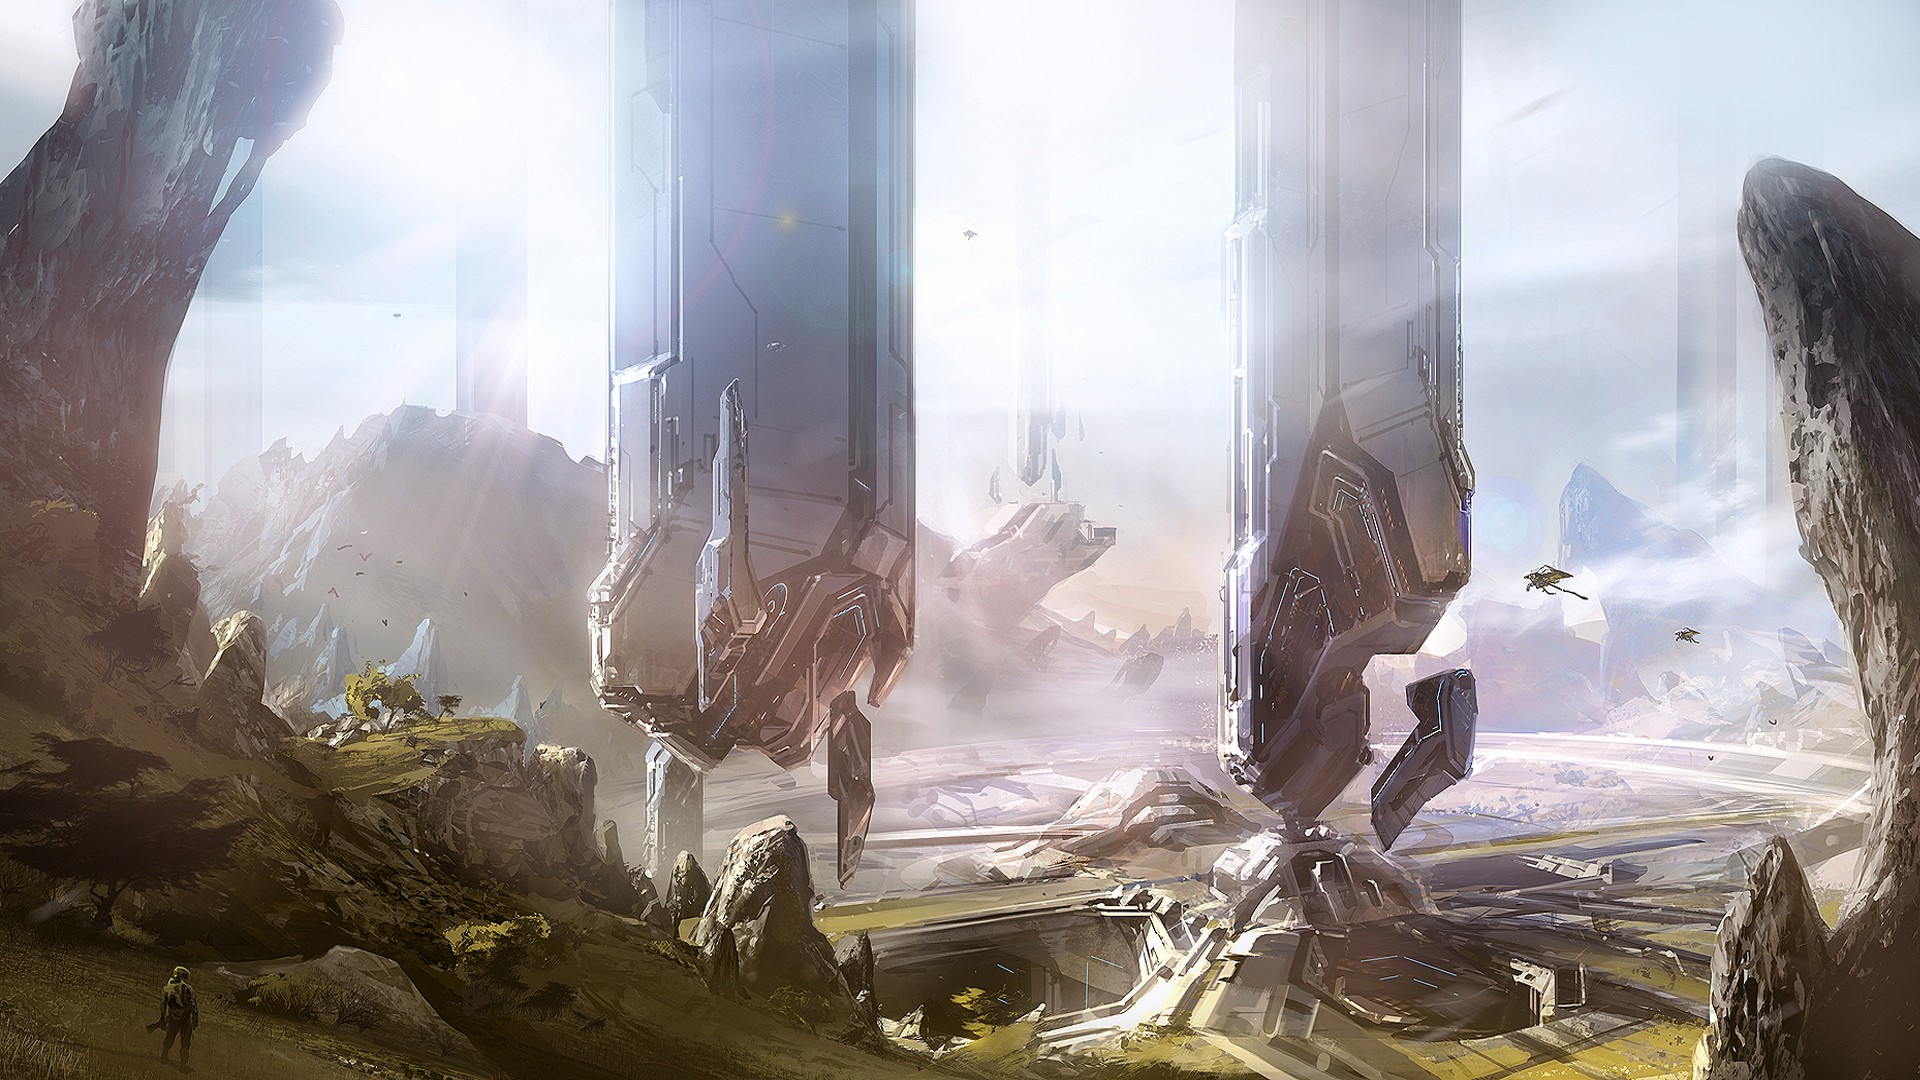 Halo Wallpaper Hd Halo 4 Artwork Full Hd Wallpaper And Background Image